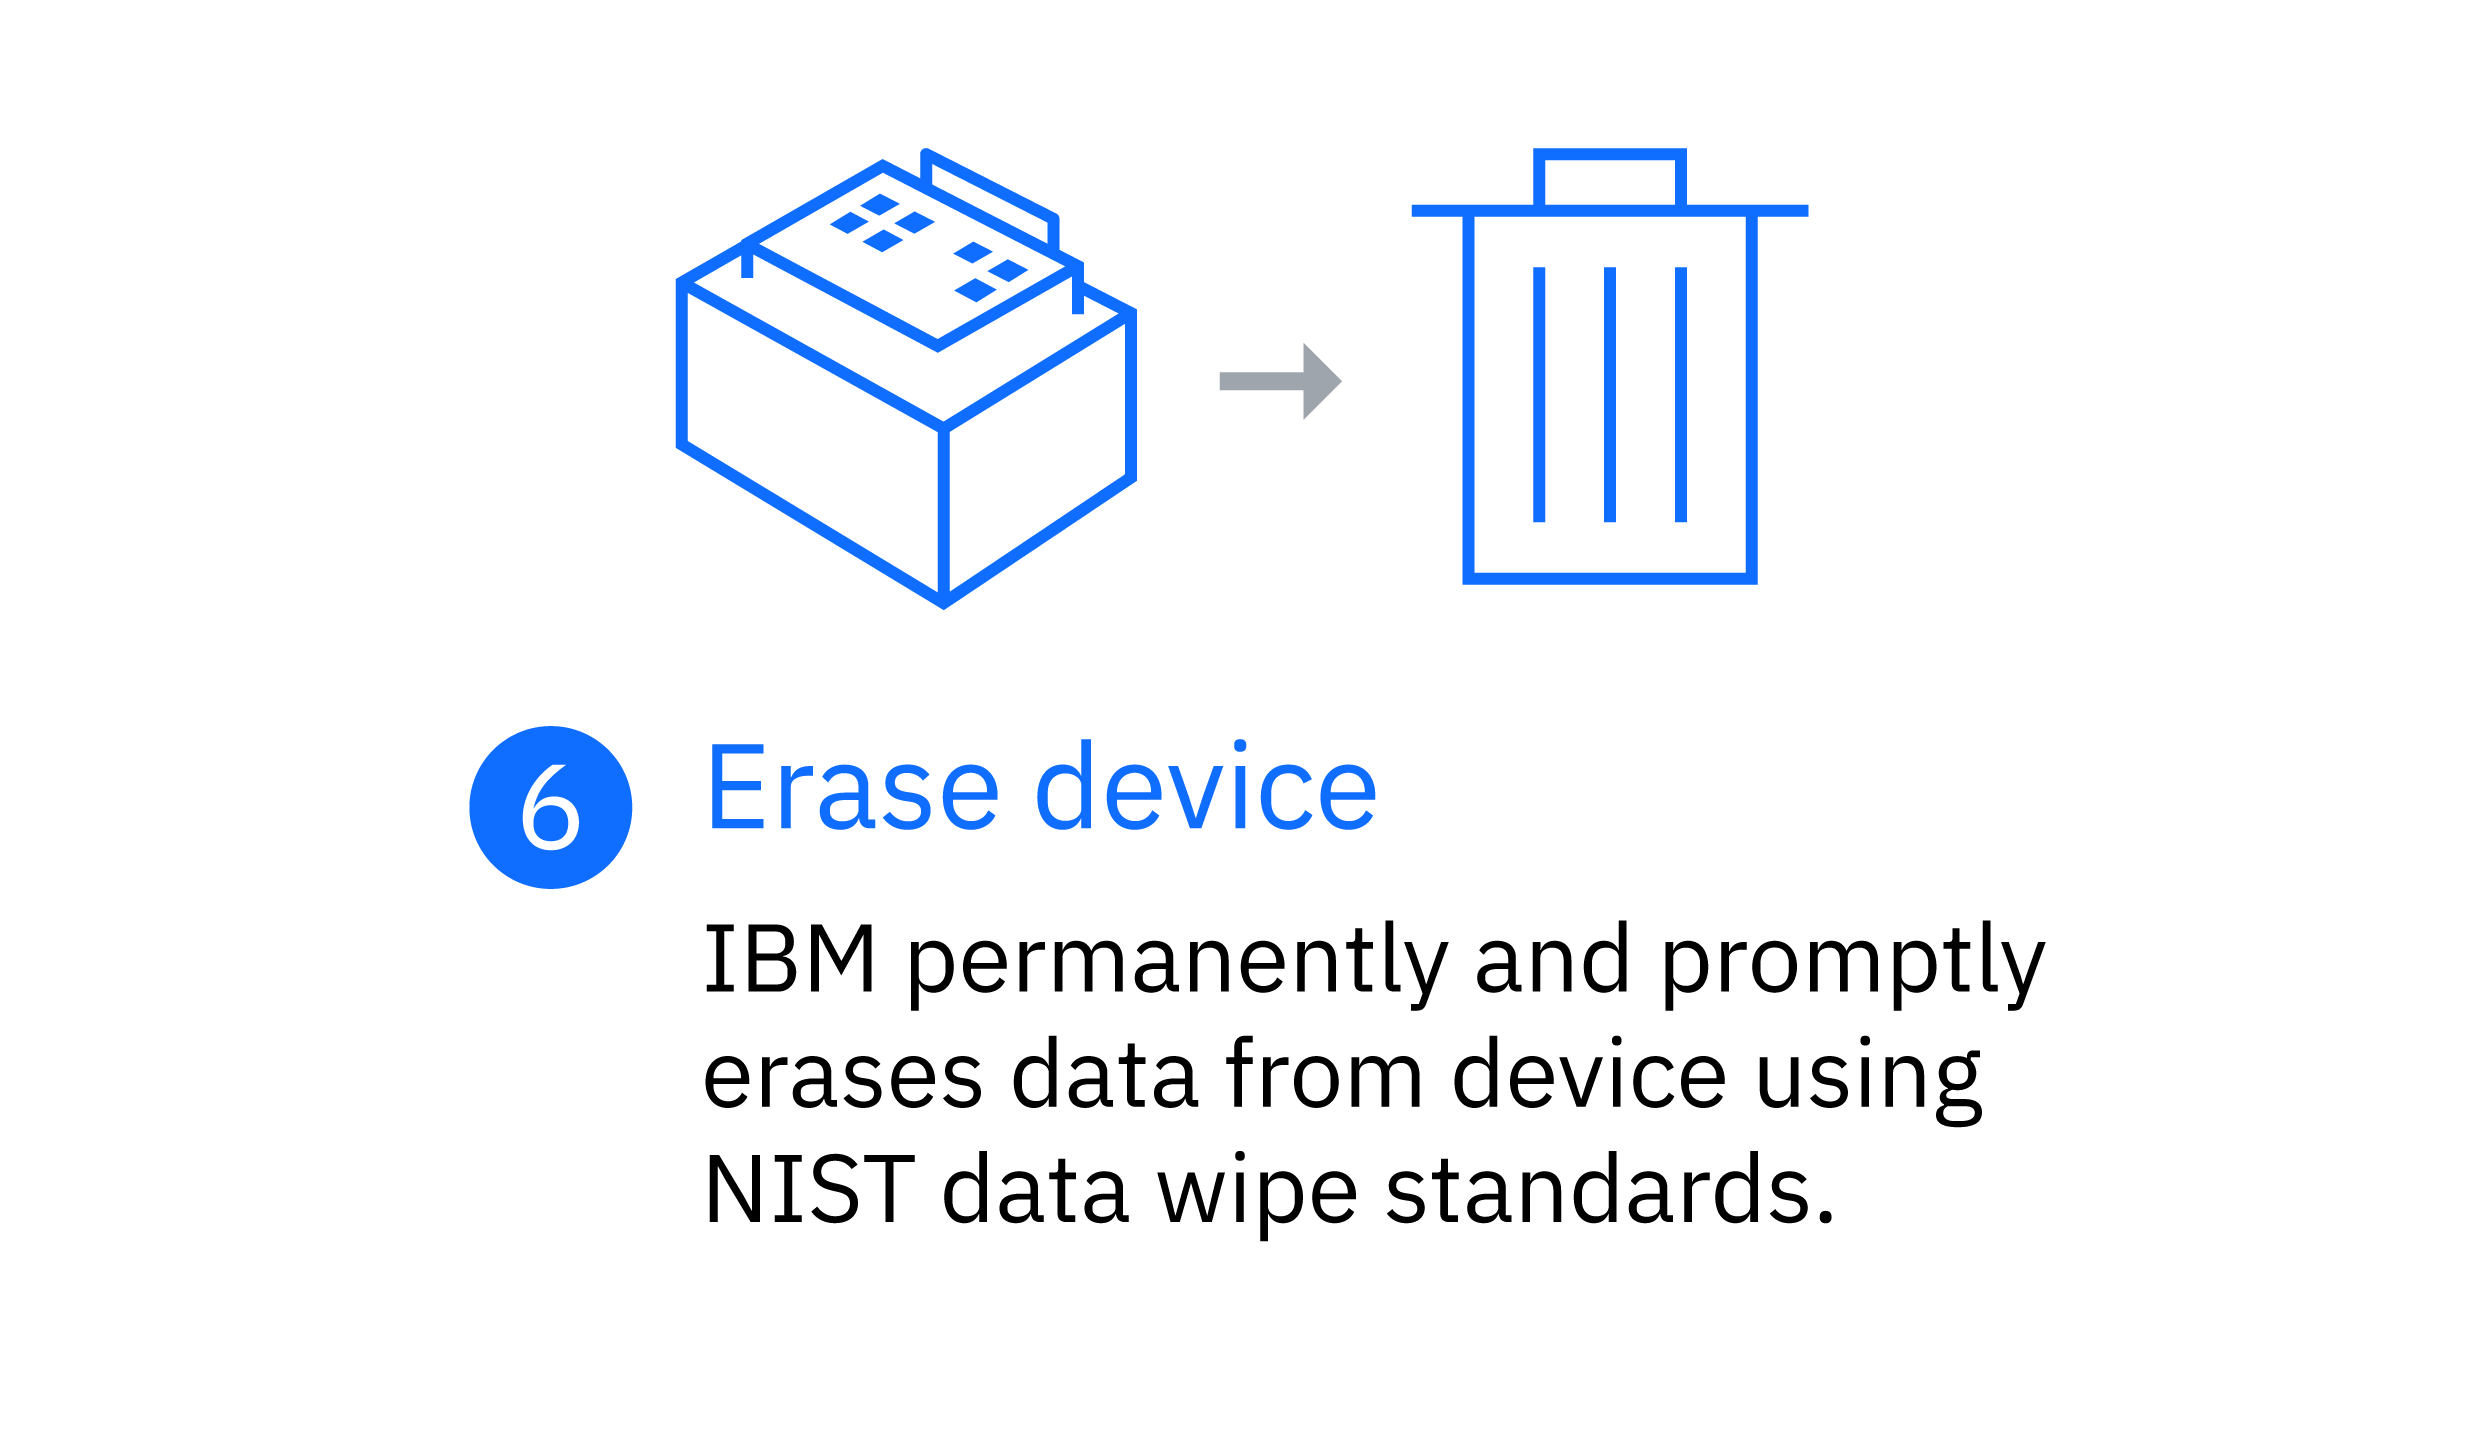 Step 6: Erase device